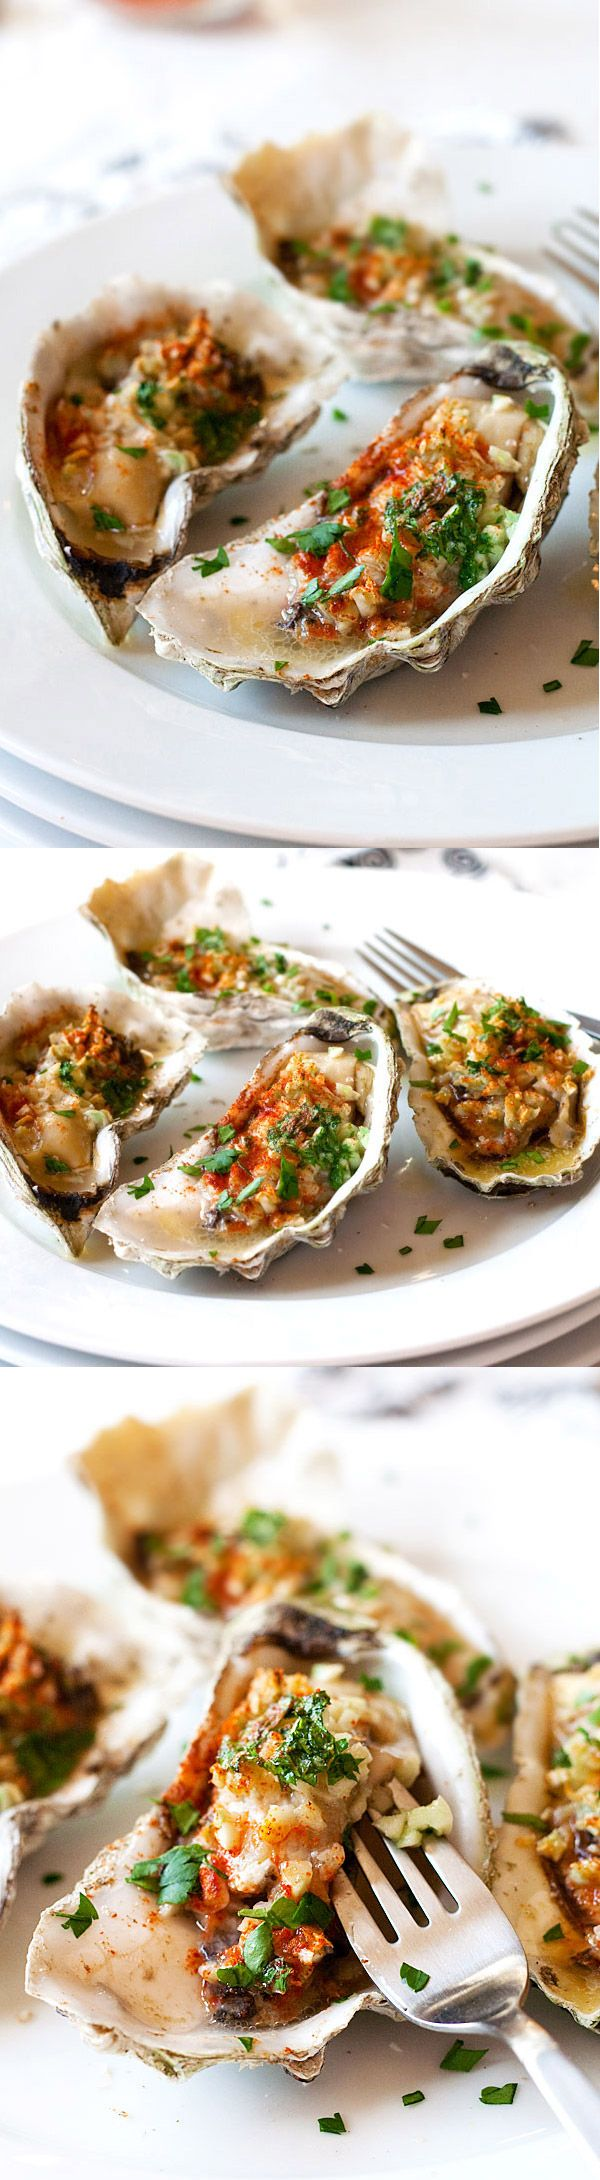 Grilled oysters (baked oysters) – oyster on the half shell with garlic, butter, parsley and paprika. Juicy, briny and crazy delicious. | rasamalaysia.com